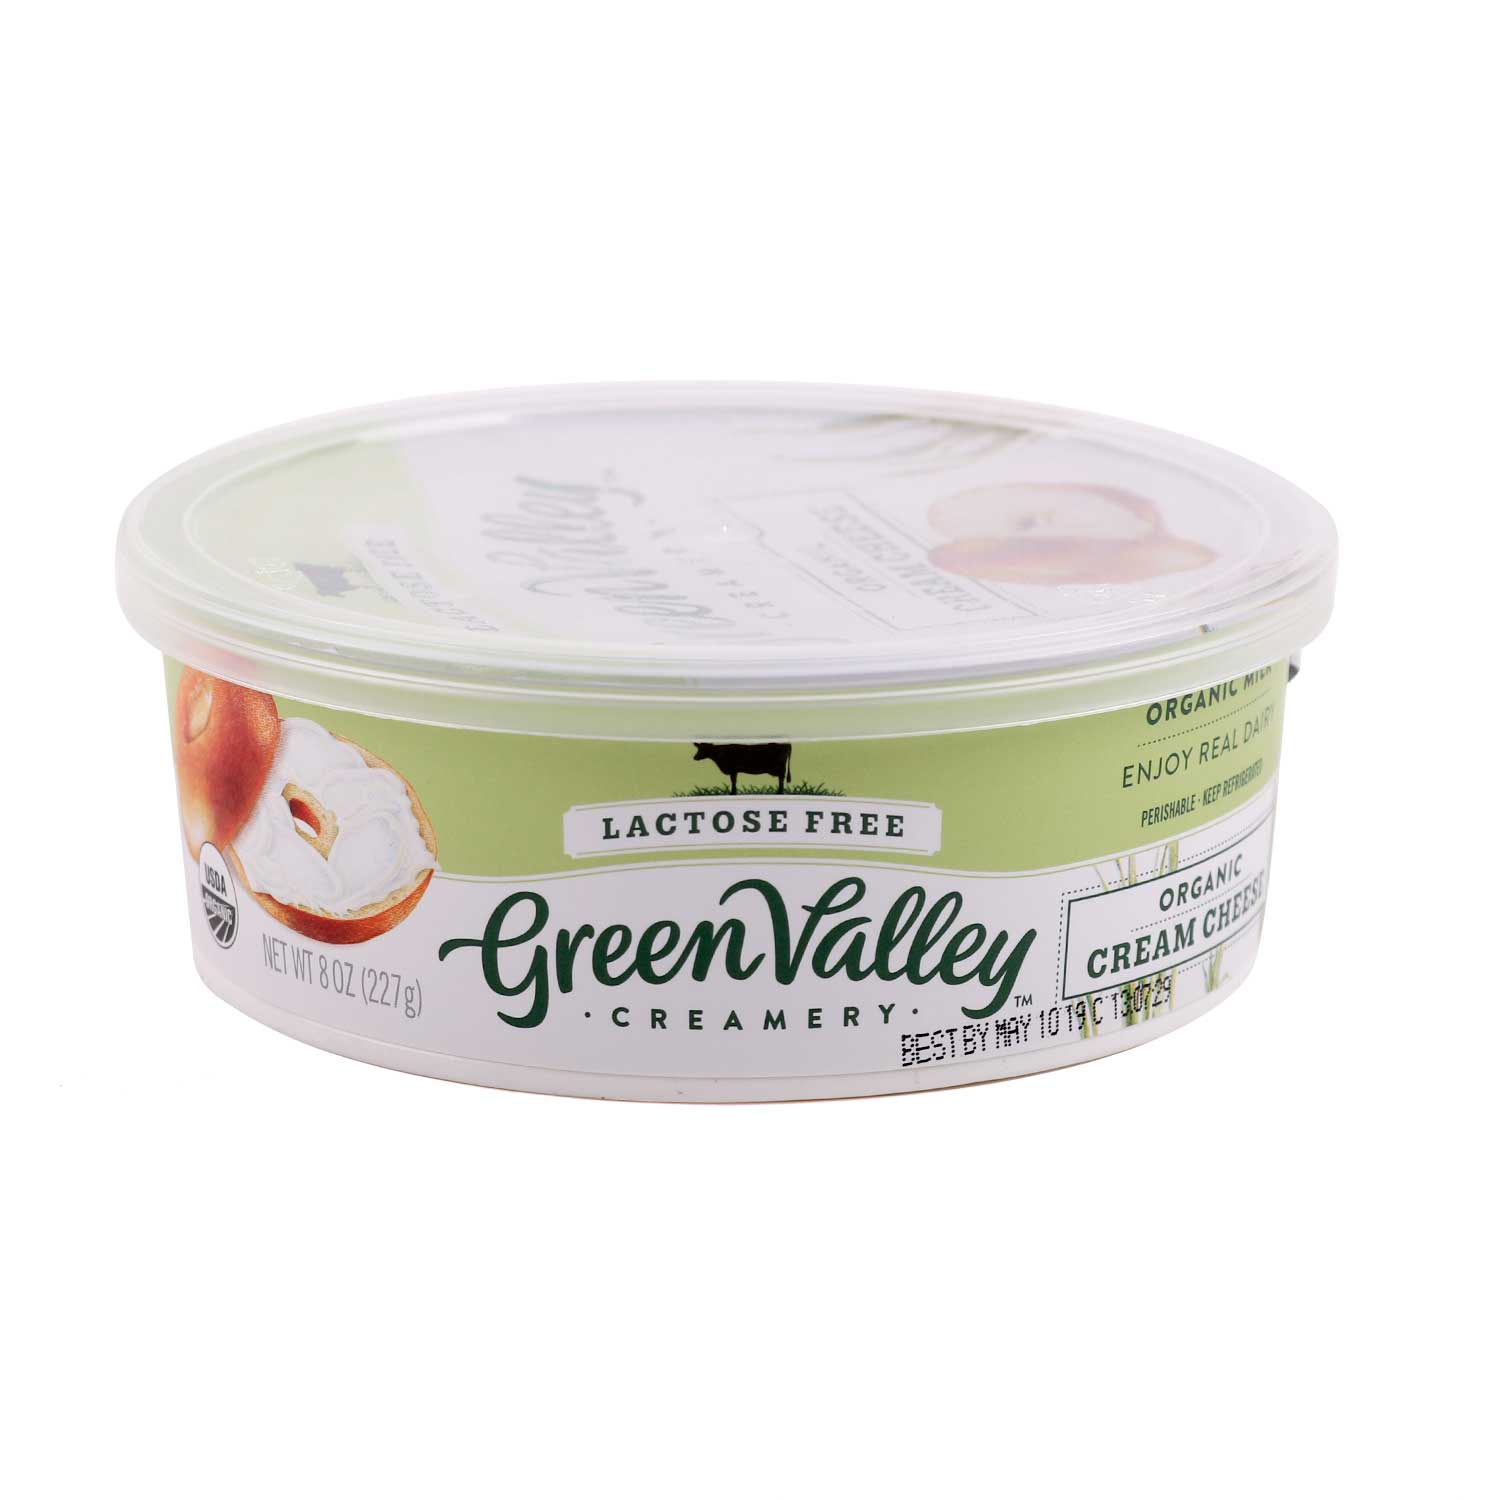 Lactose Free - Cream Cheese-Organic